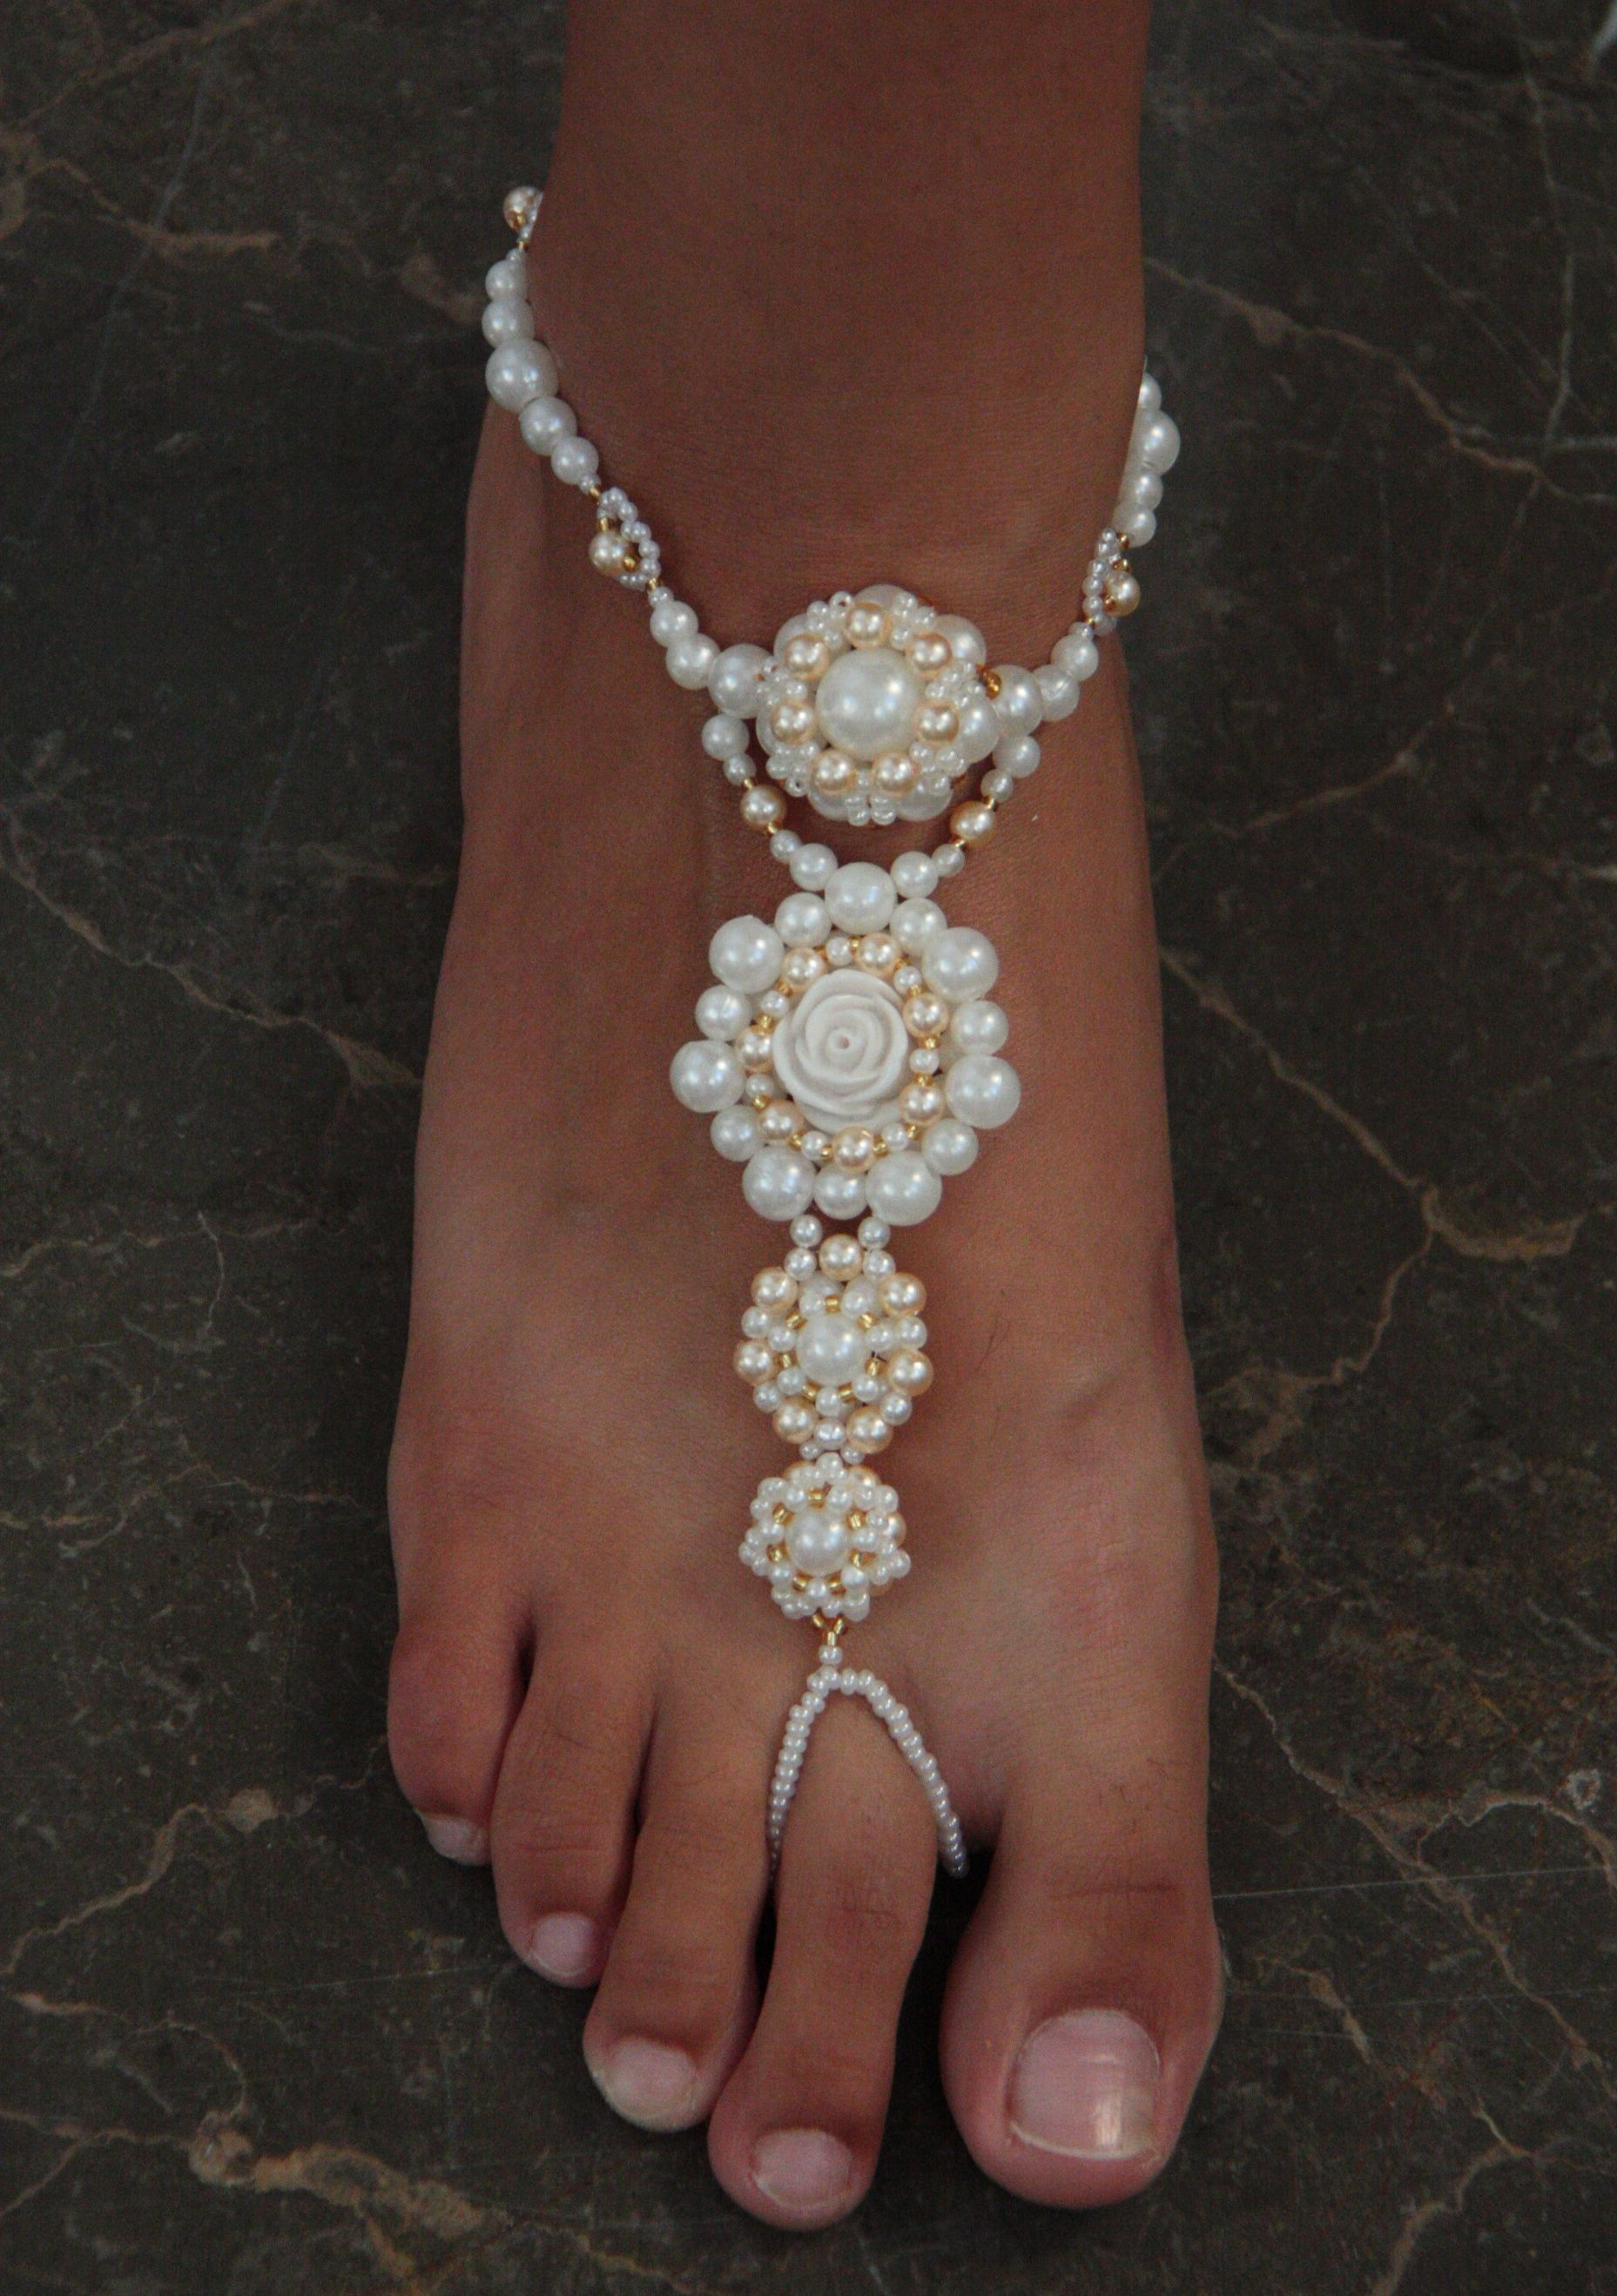 Pin by Nevelynka Nasha on 8 Jewelry for the feet by Nevelynka Nasha